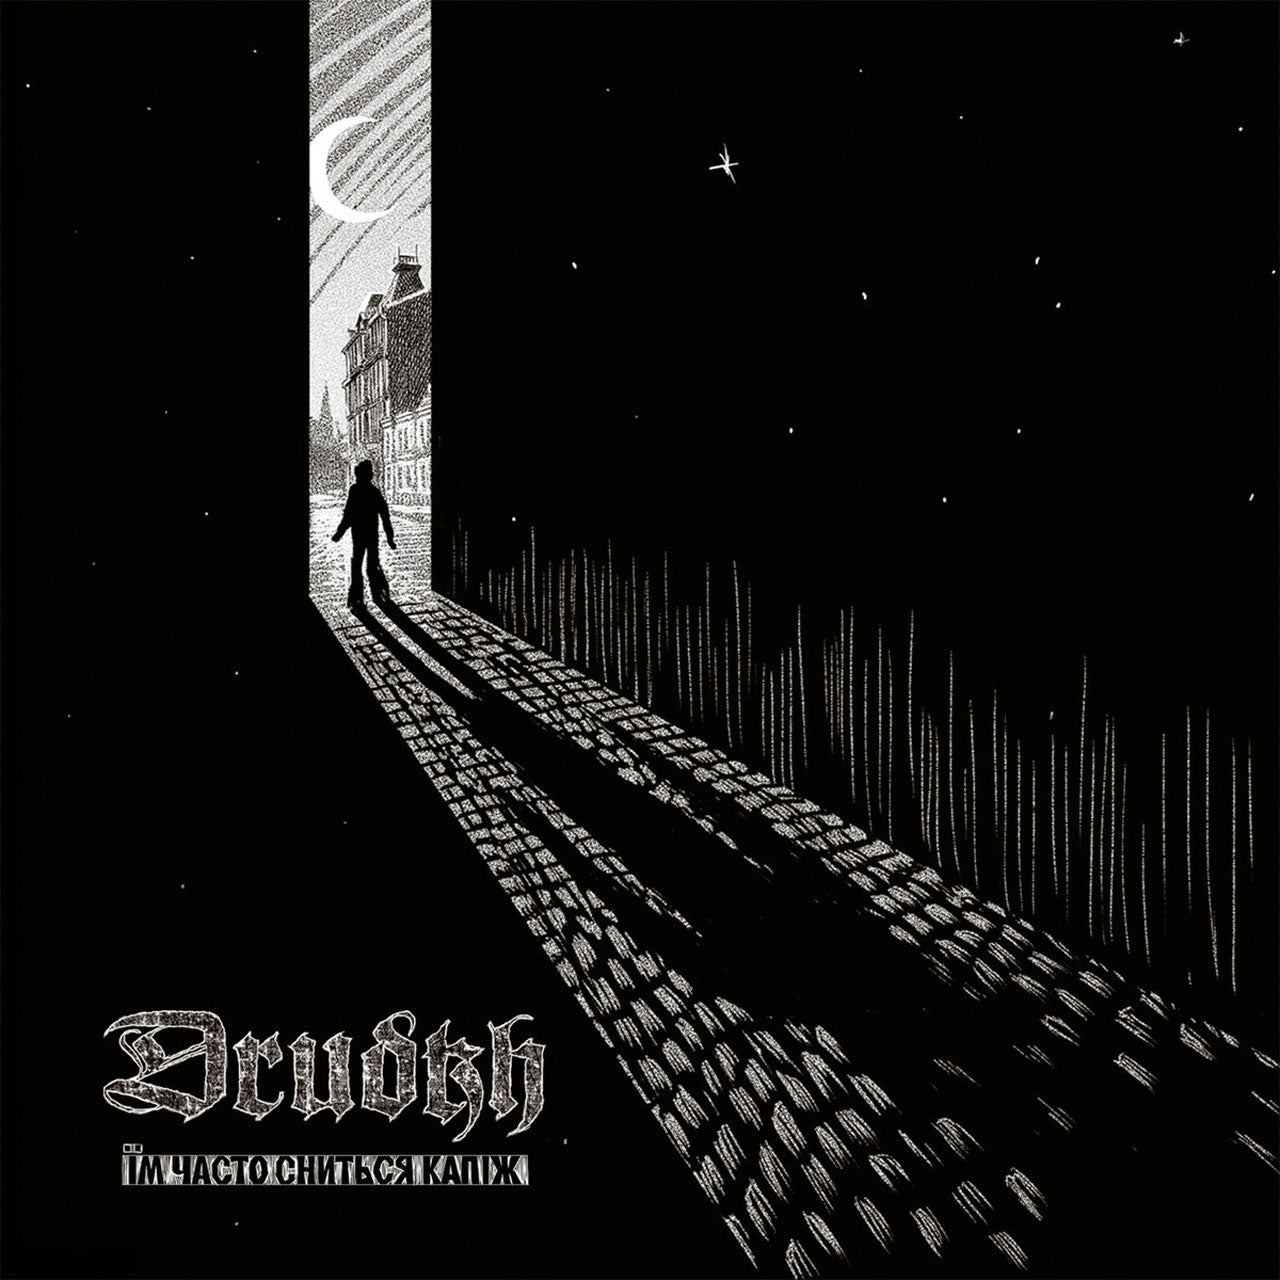 Drudkh - They Often See Dreams About the Spring (Їм часто сниться капіж) (Black Edition) (LP)